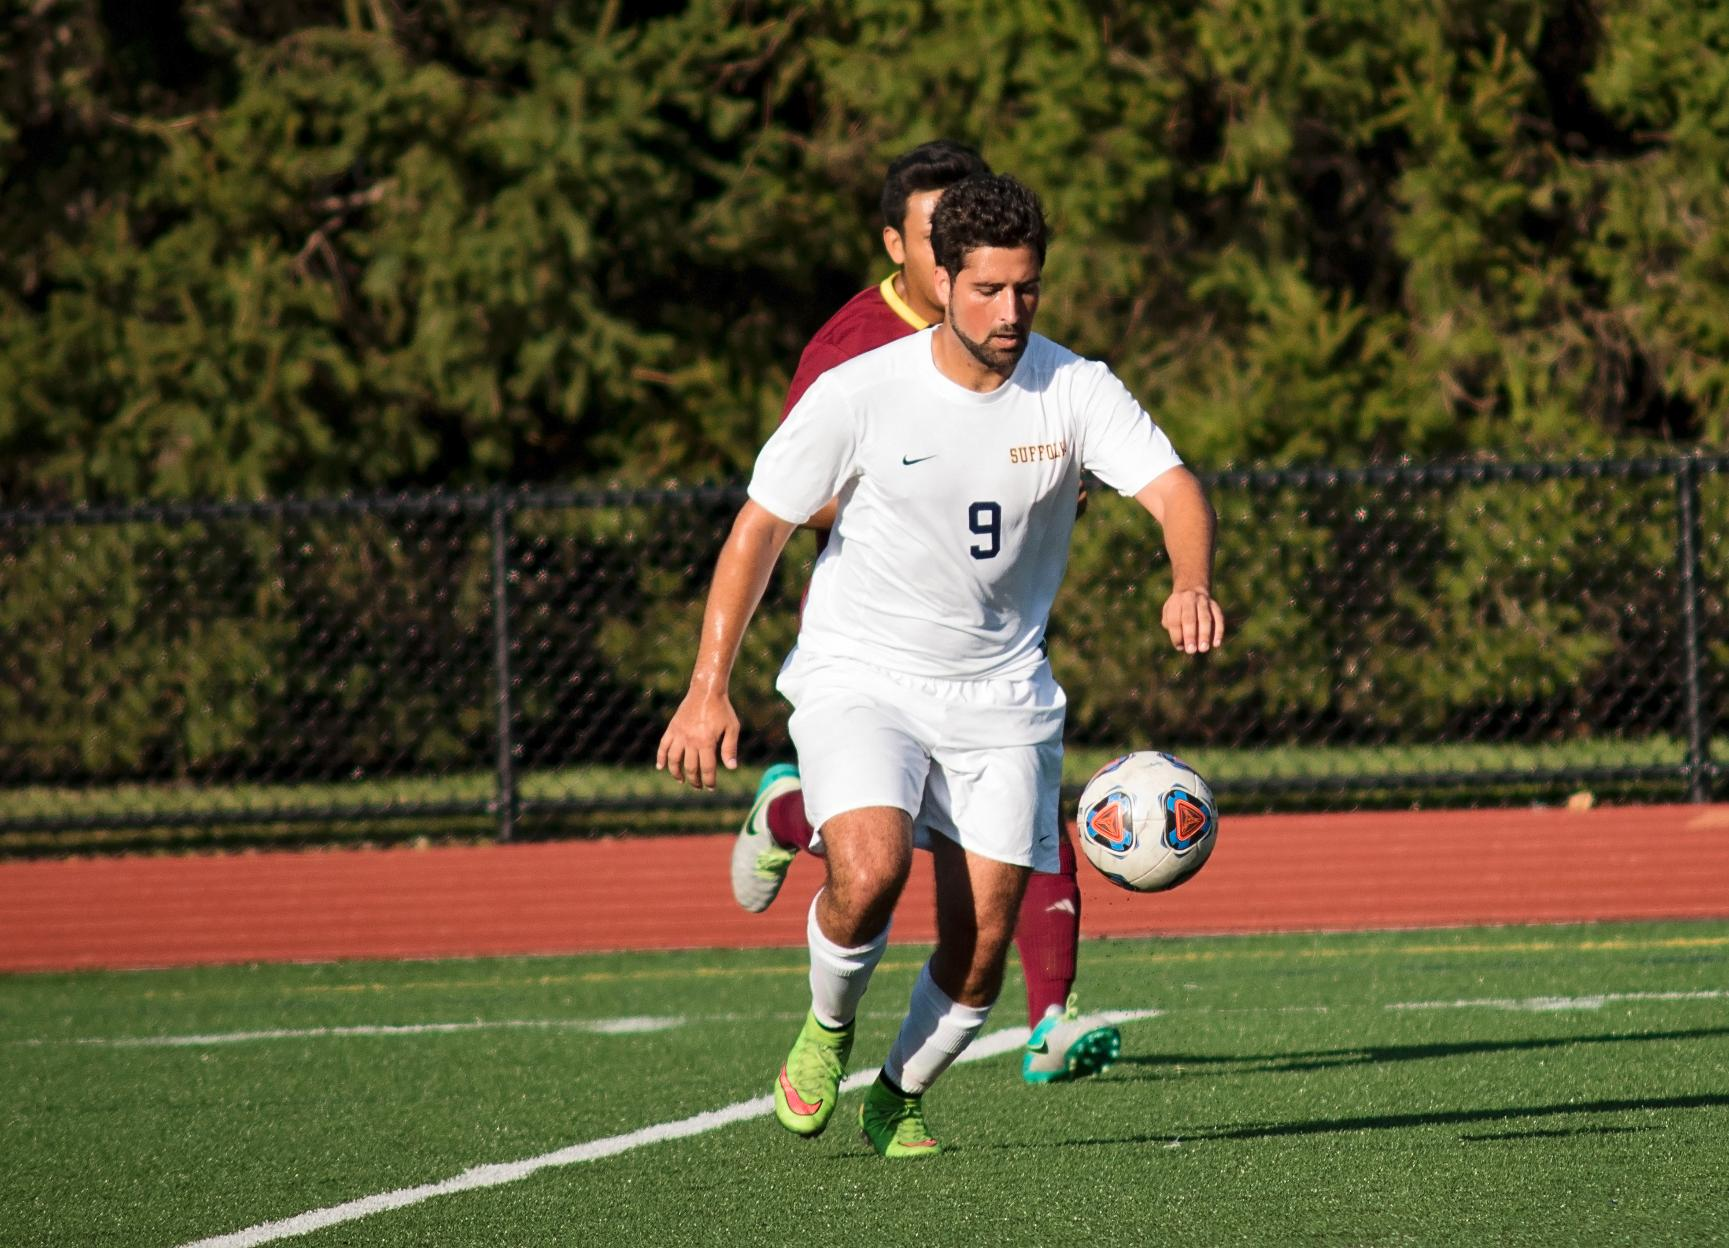 Men's Soccer Tops Anna Maria 5-1 on Saturday in GNAC Action